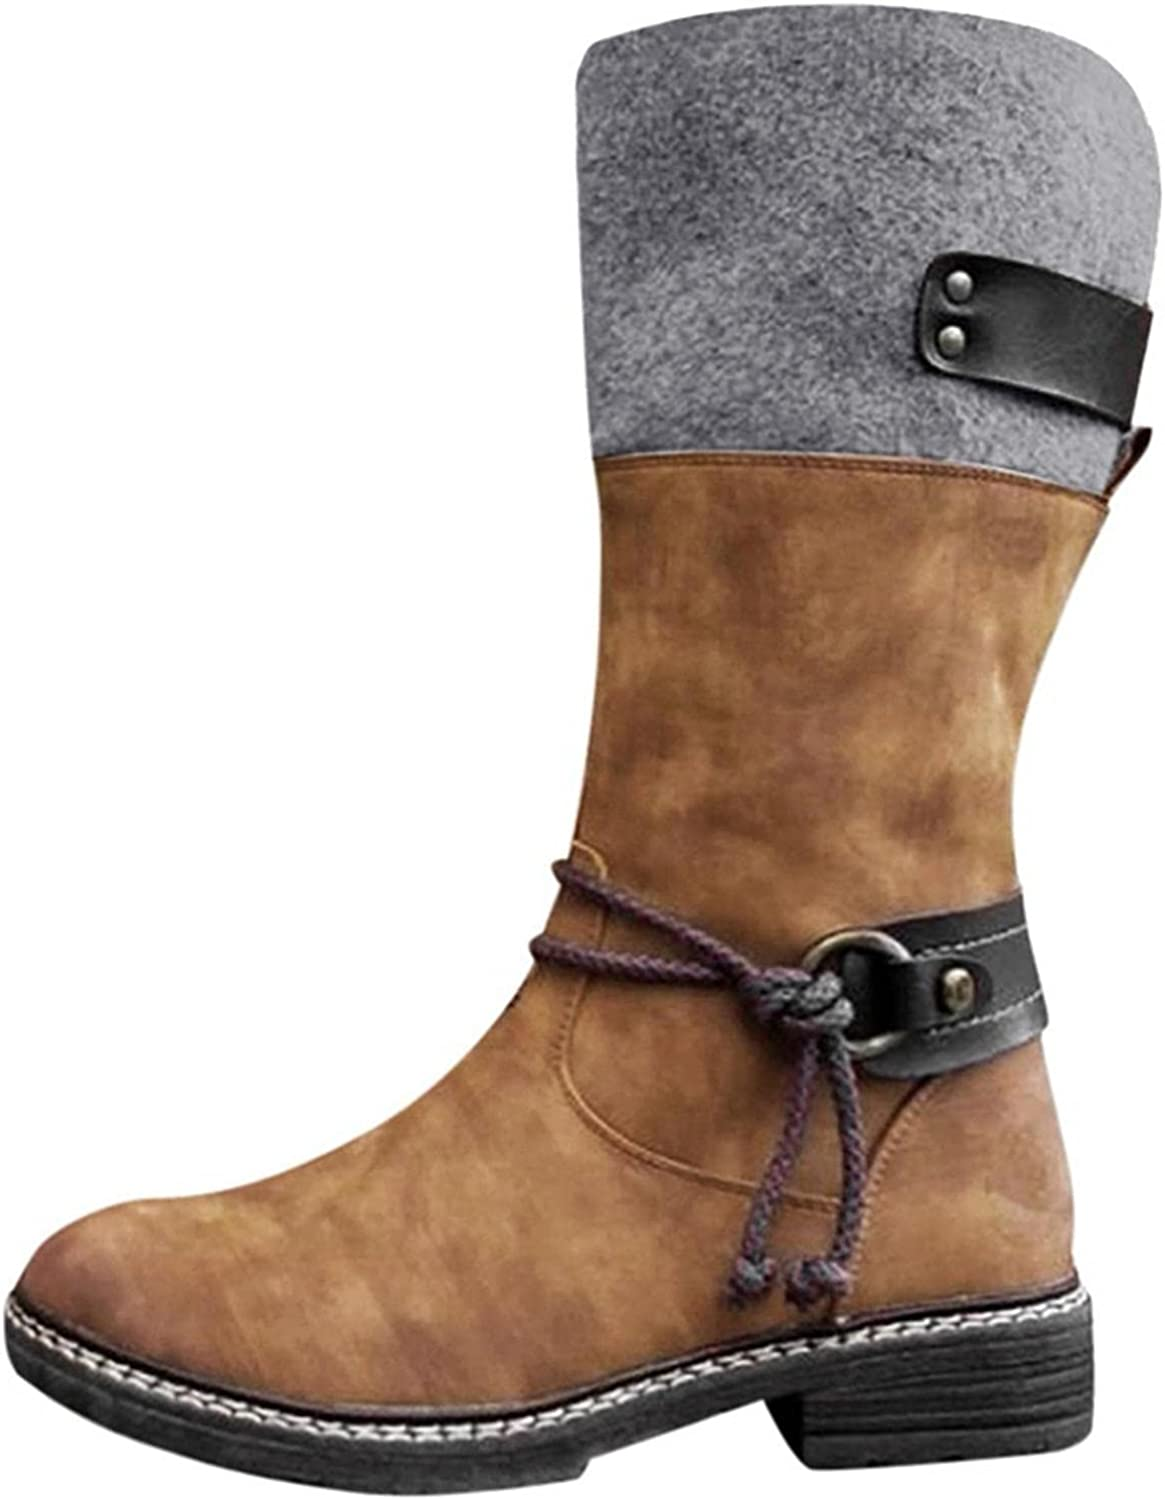 Gibobby Cowboy Boots for Women,Women Mid Calf Boots Low Heel Cowgirl Boots Zipper Platform Boots Casual Western Shoes